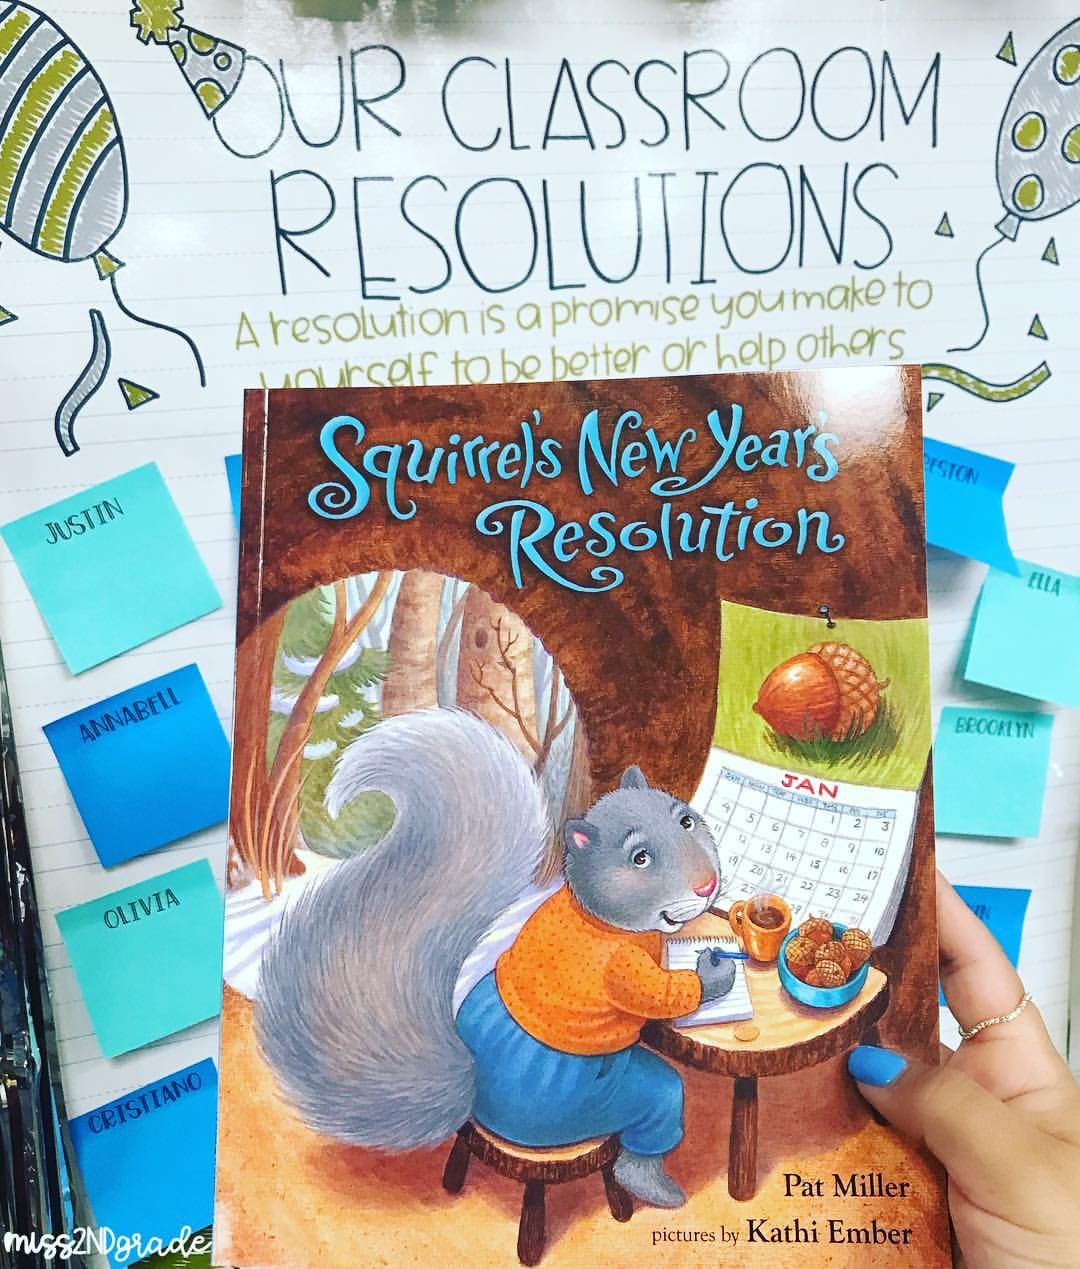 Hooray for 2019 and for Classroom Resolutions! 🎉 'Squirrel